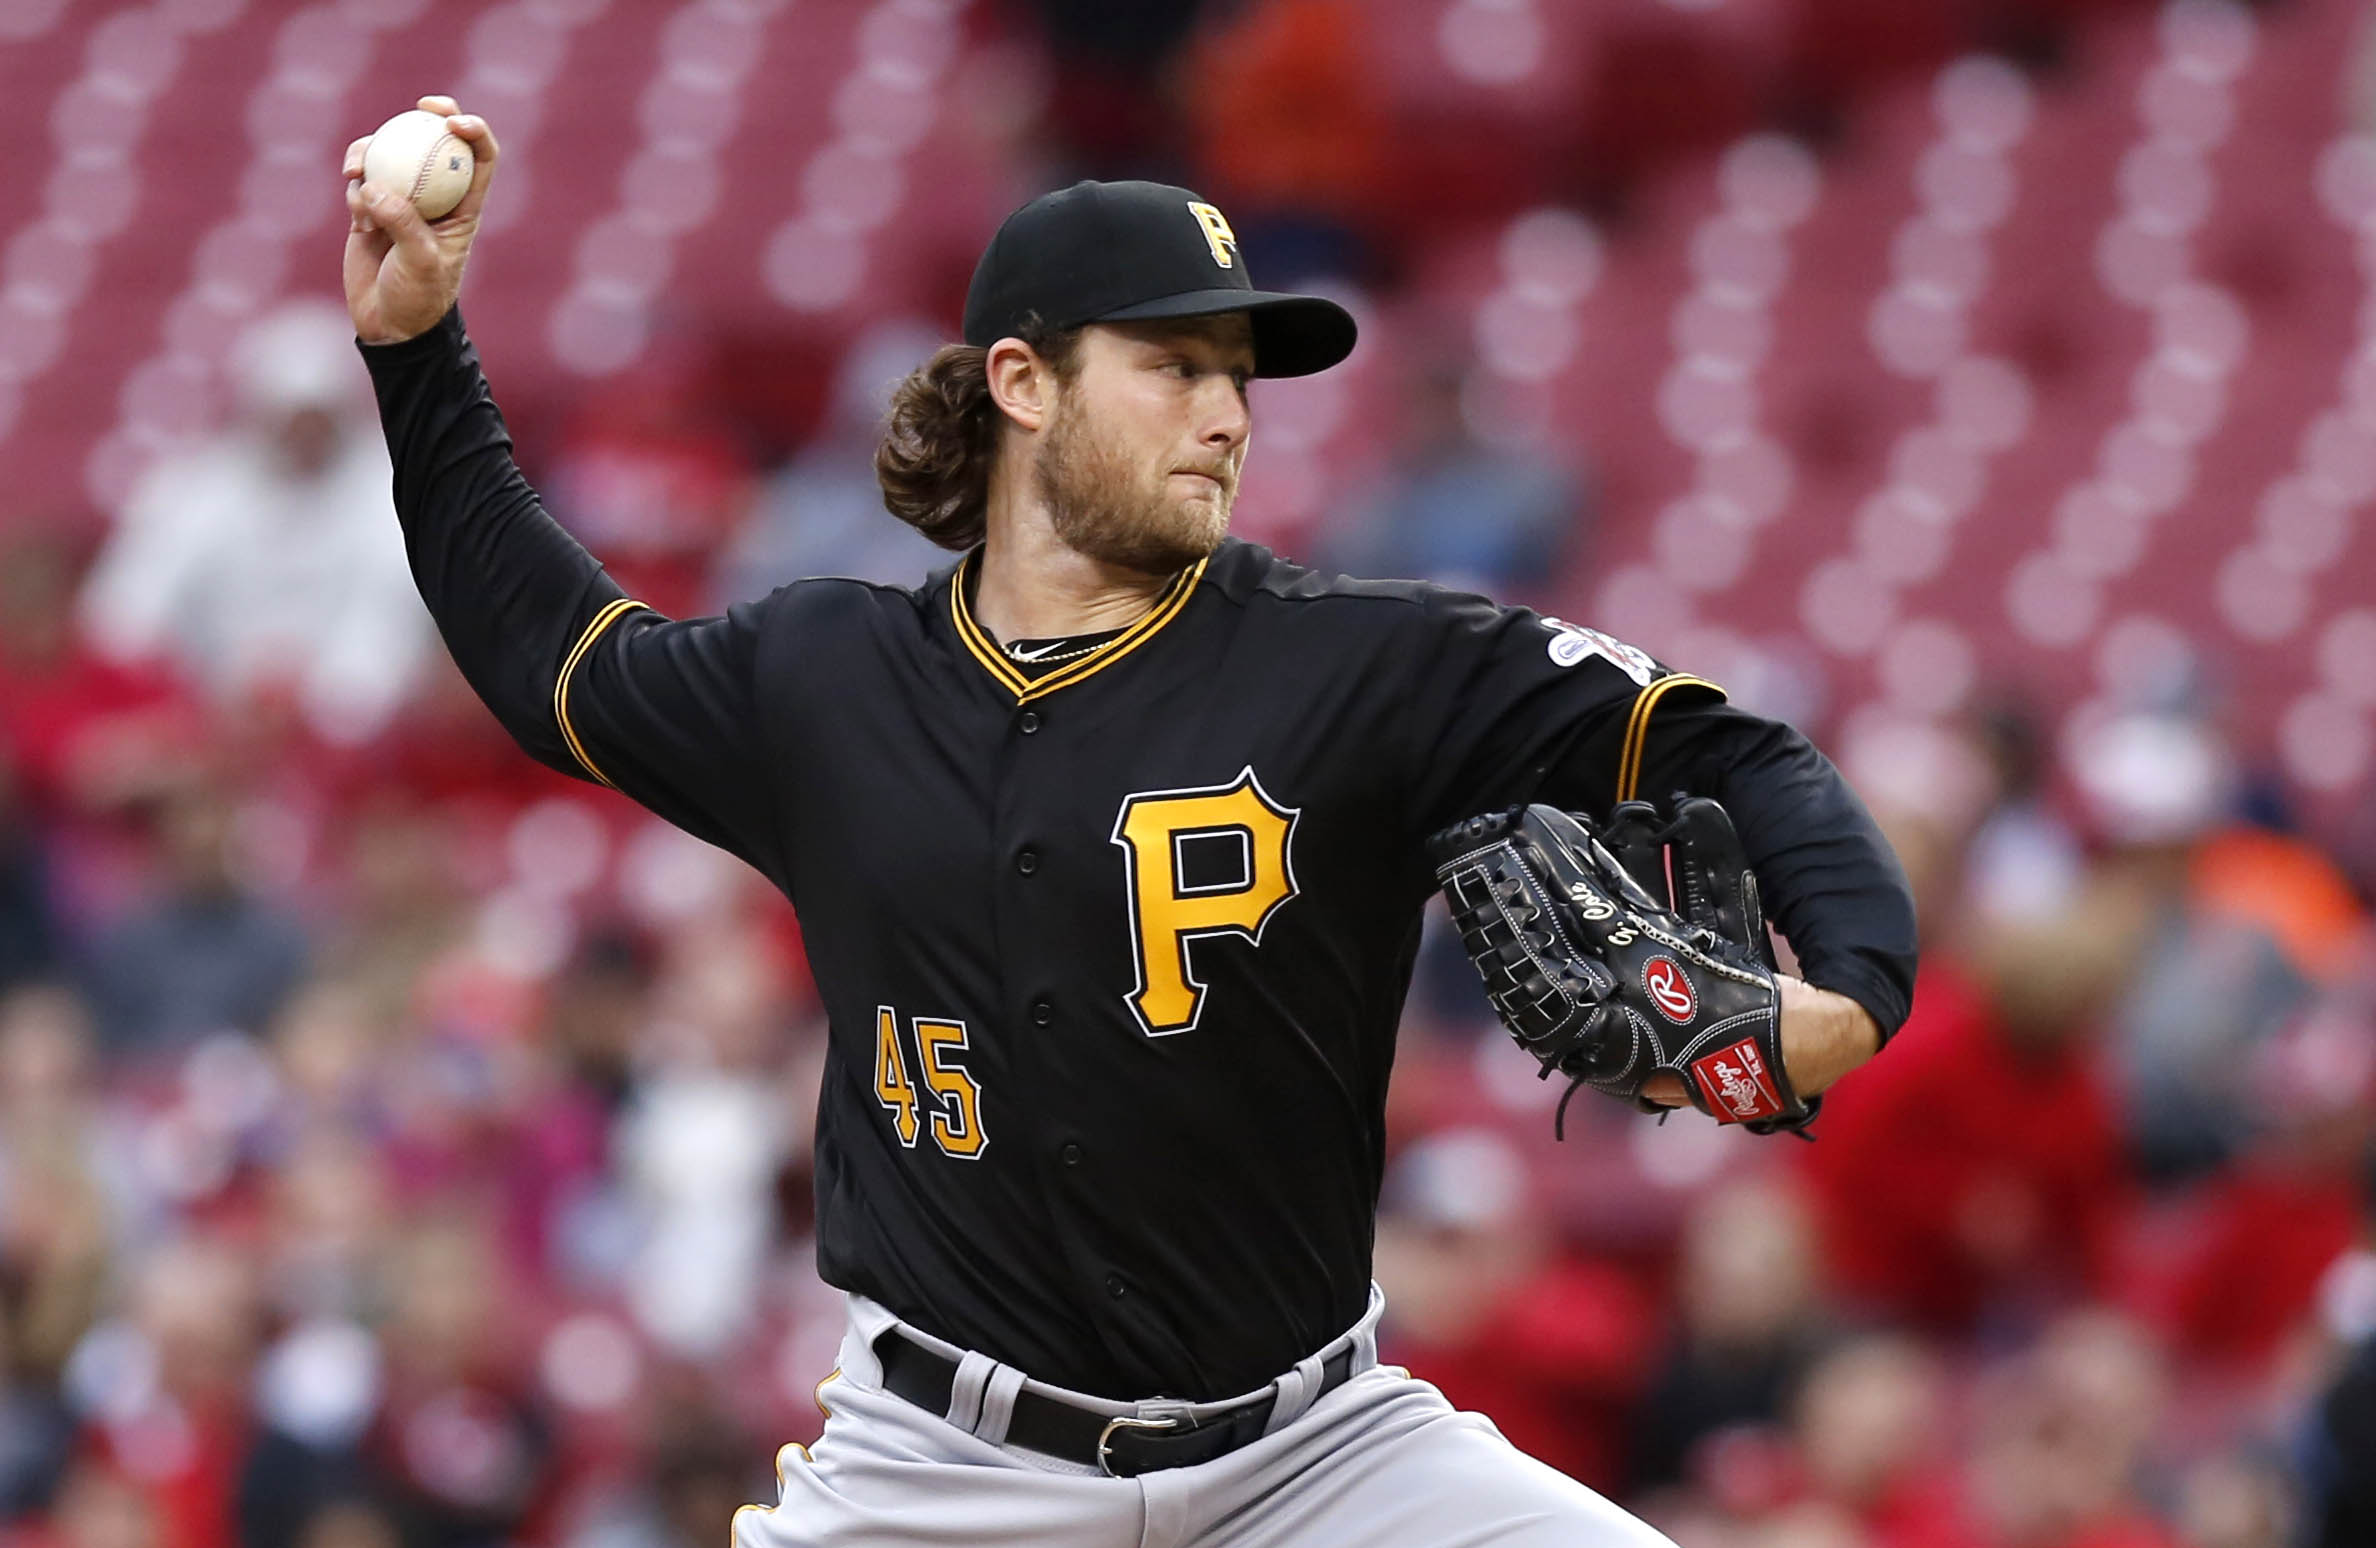 Pittsburgh Pirates: Gerrit Cole To Be On MLB Network